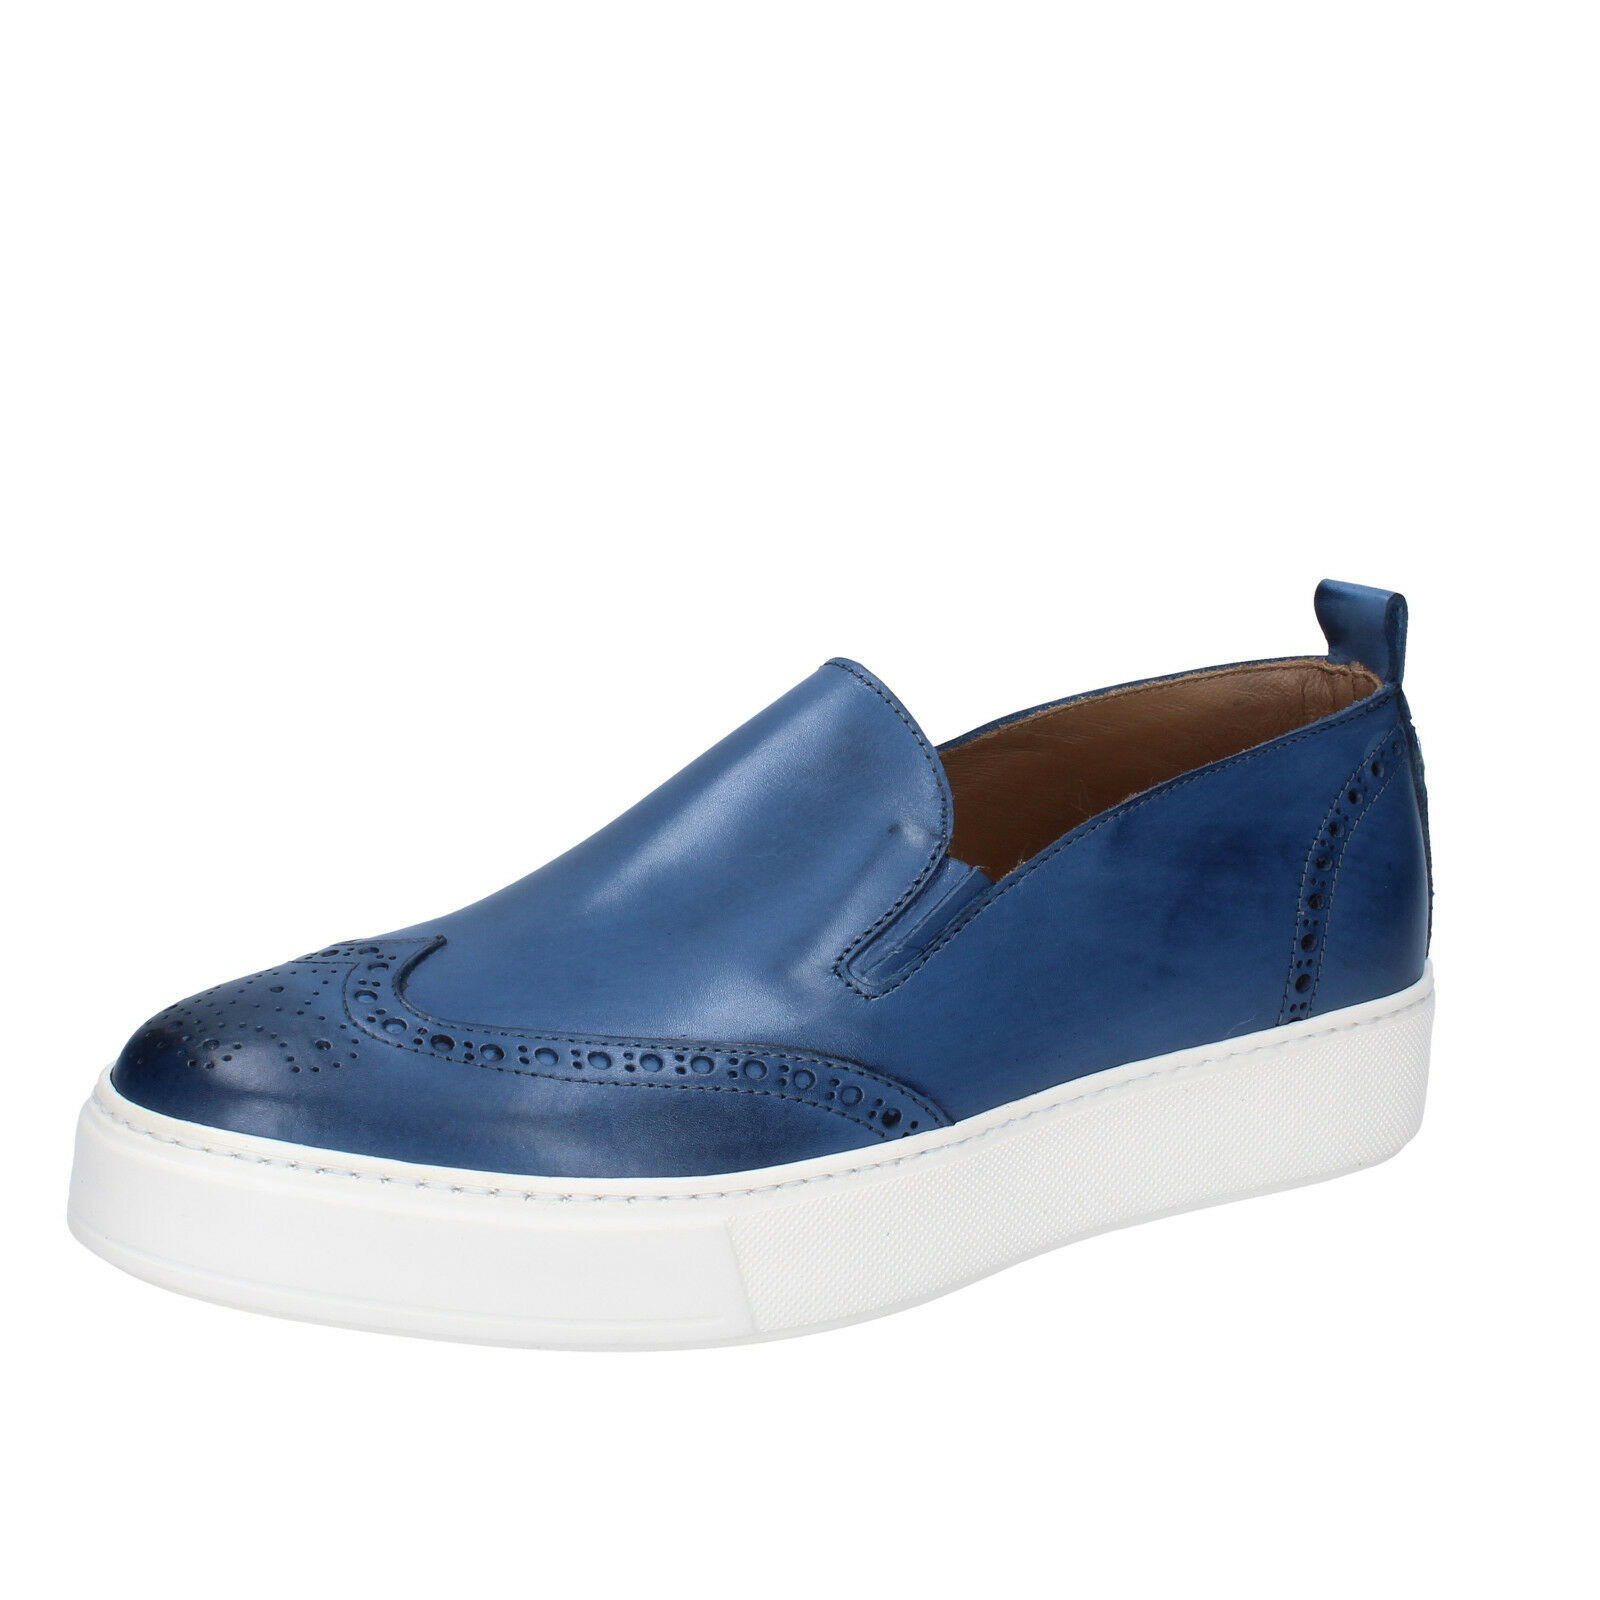 Men's shoes DI MELLA 8 (EU 41) loafers bluee leather AB999-B